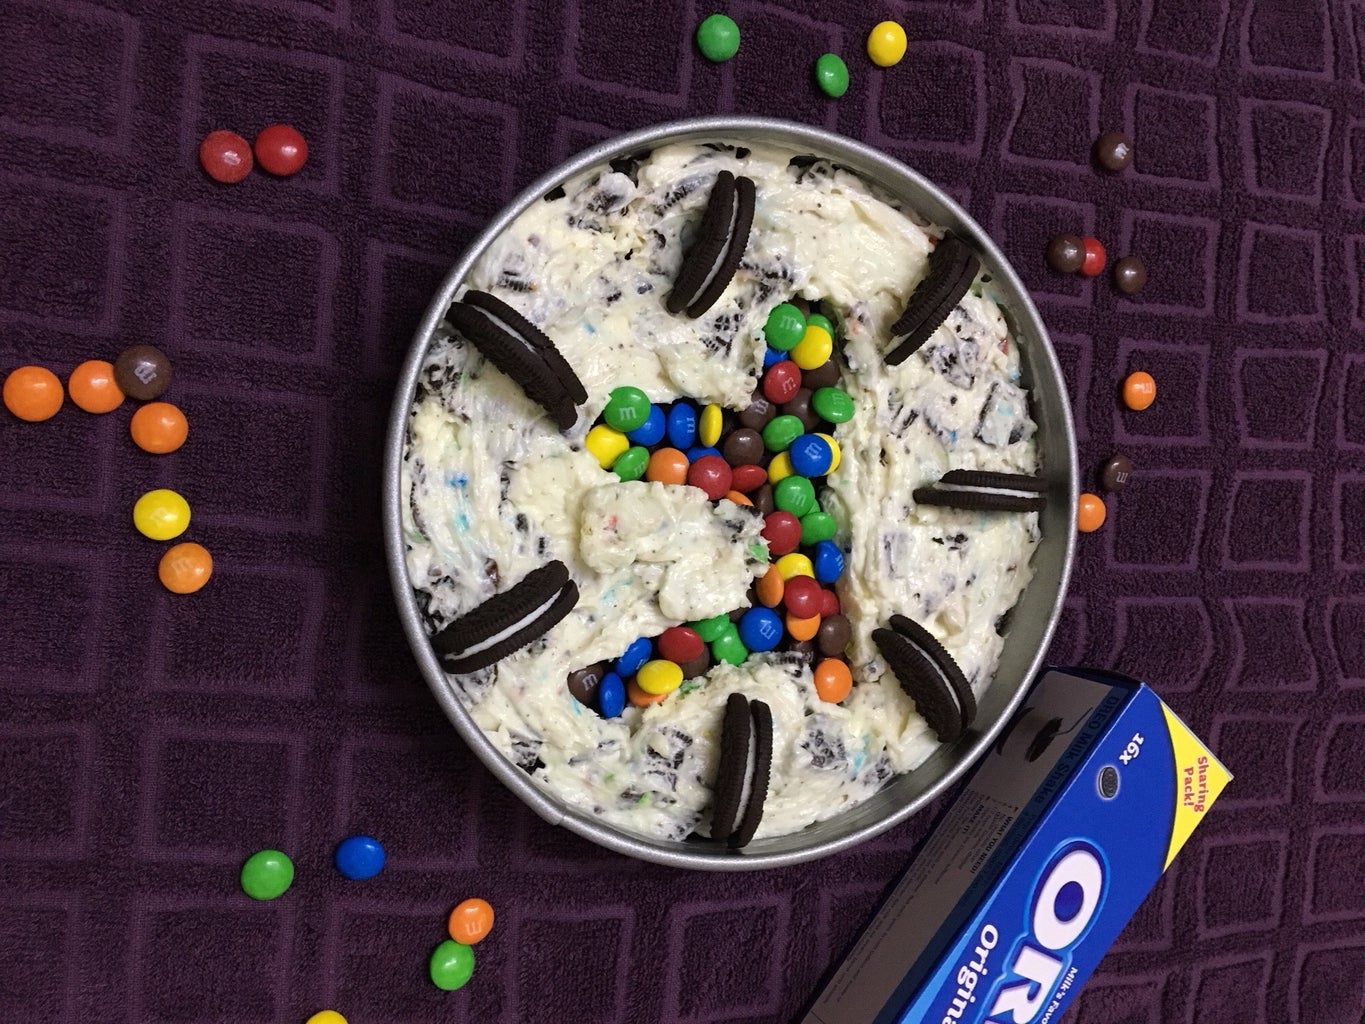 Filling the Center With Mnm's